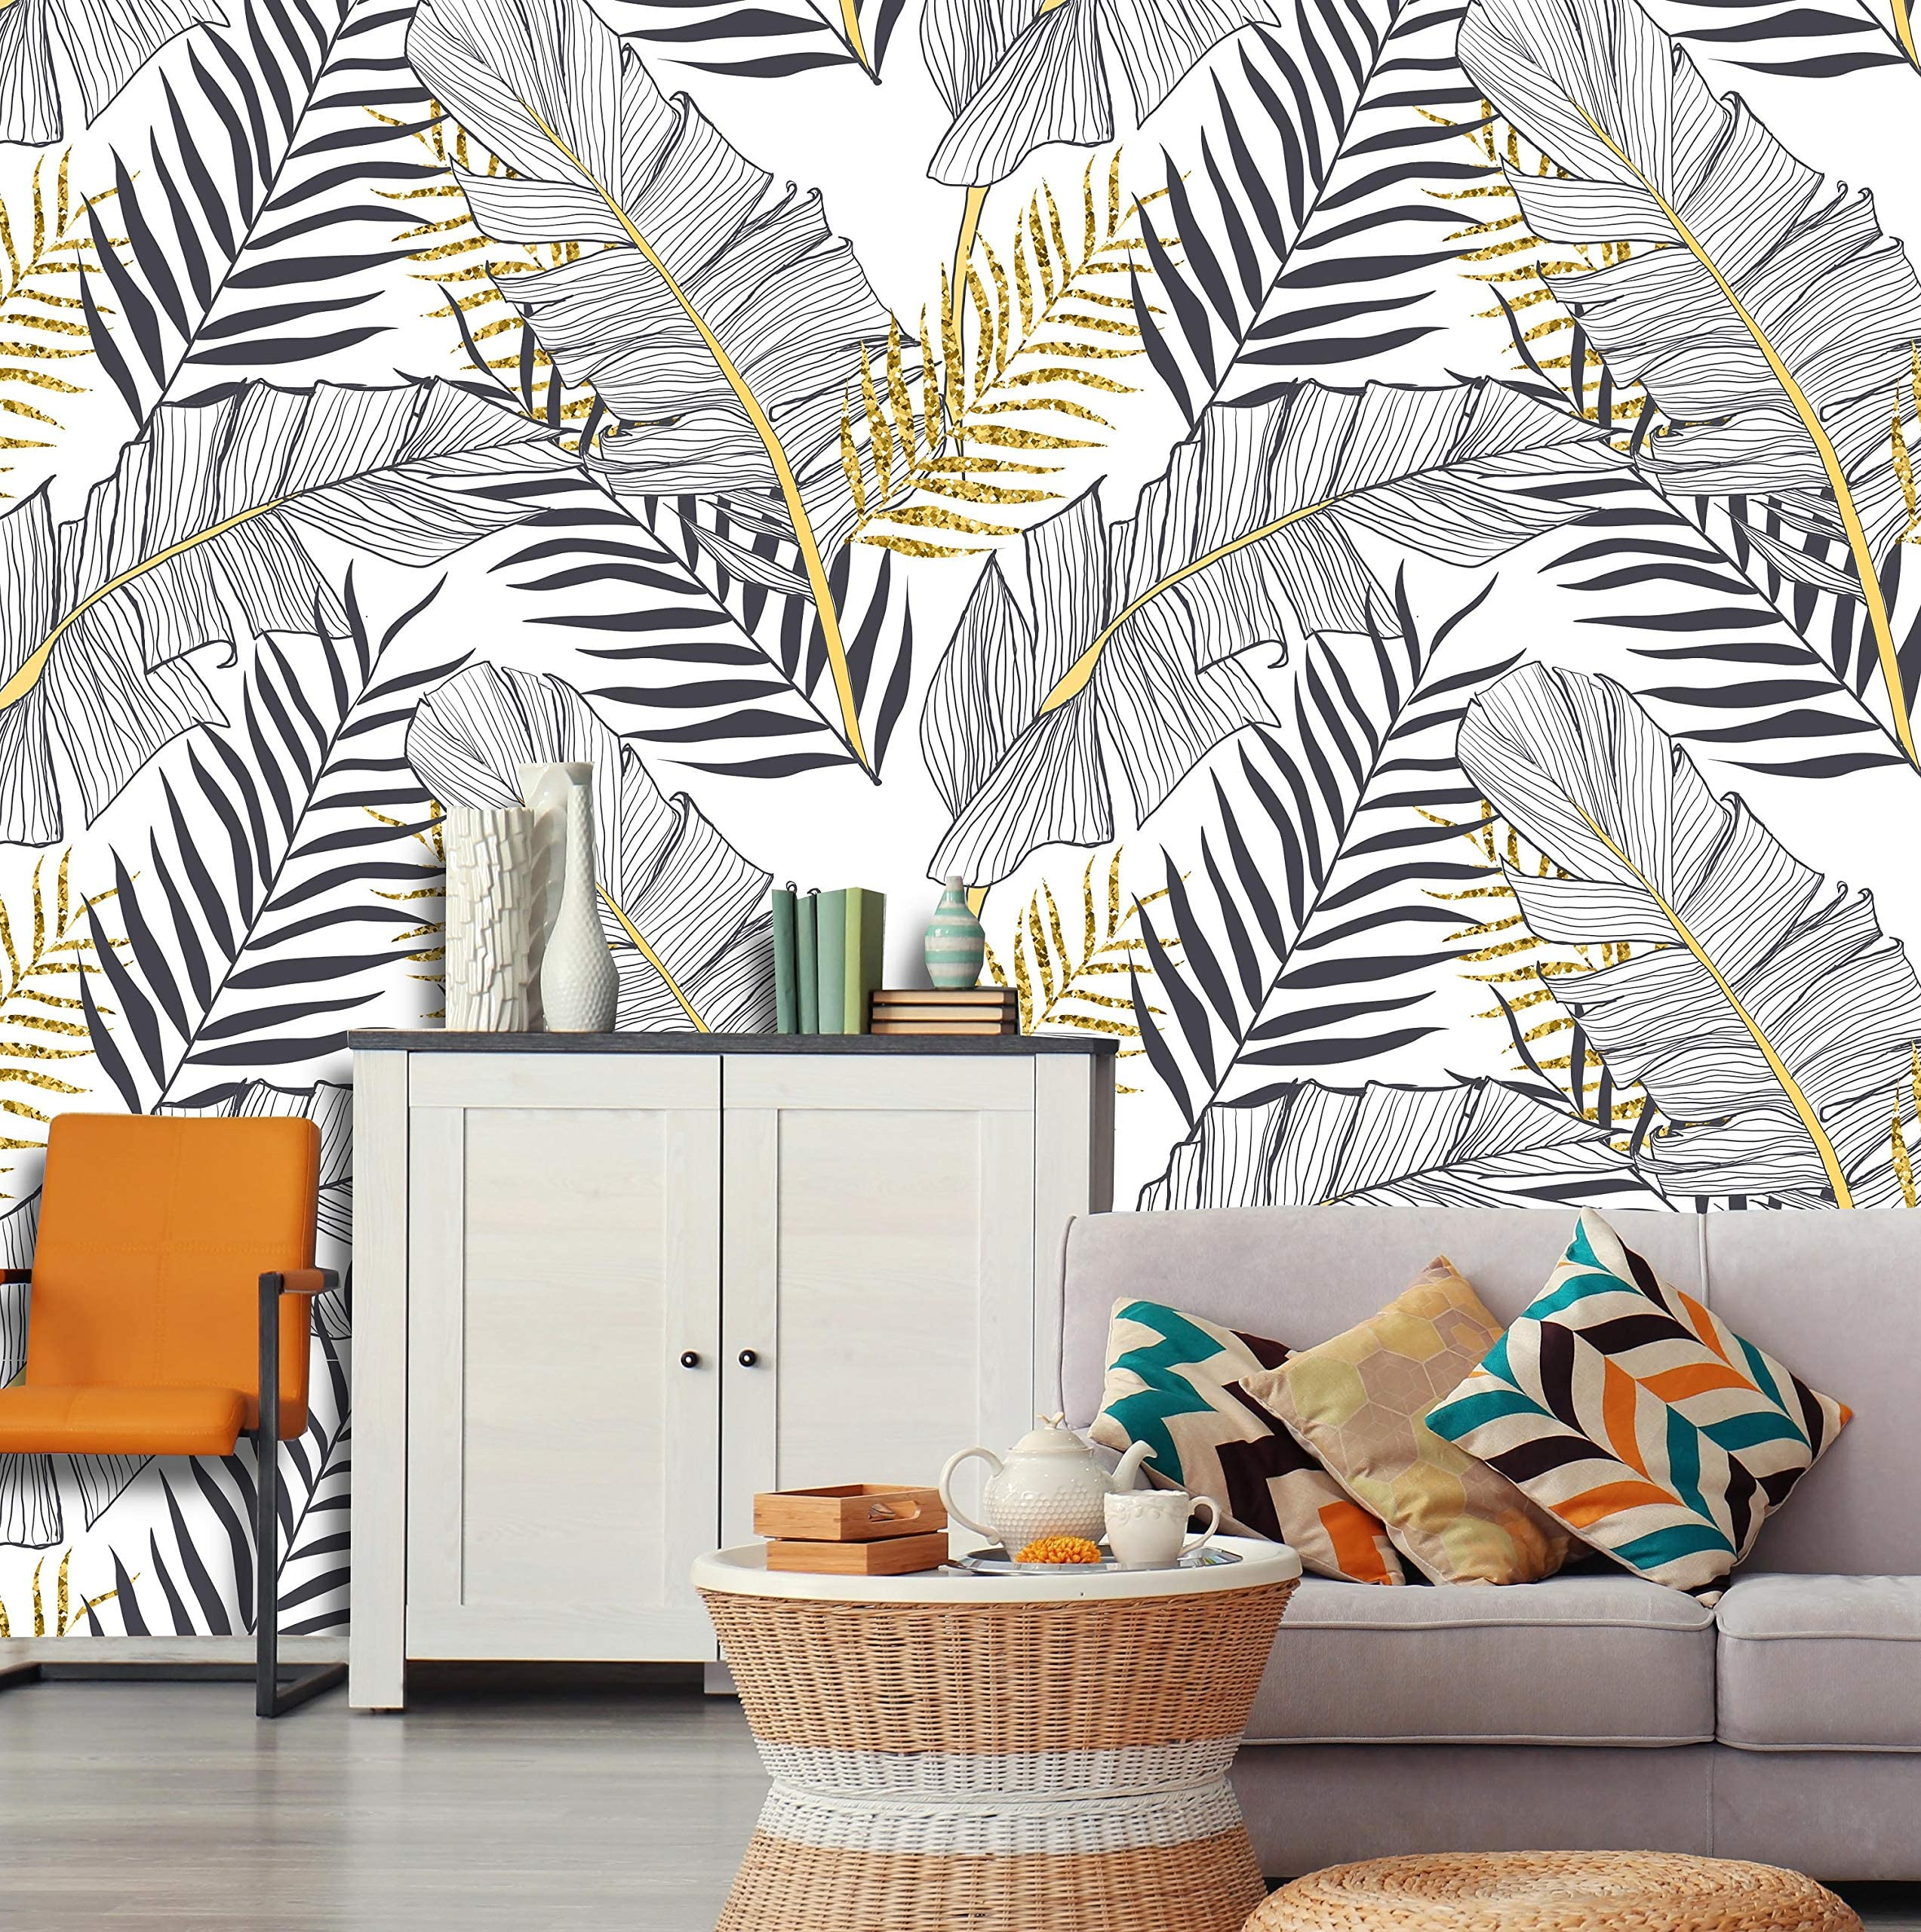 Soft Tropical Flowers Removable Wallpaper-Peel and Stick Wallpaper-Wall Mural Self Adhesive Wallpaper